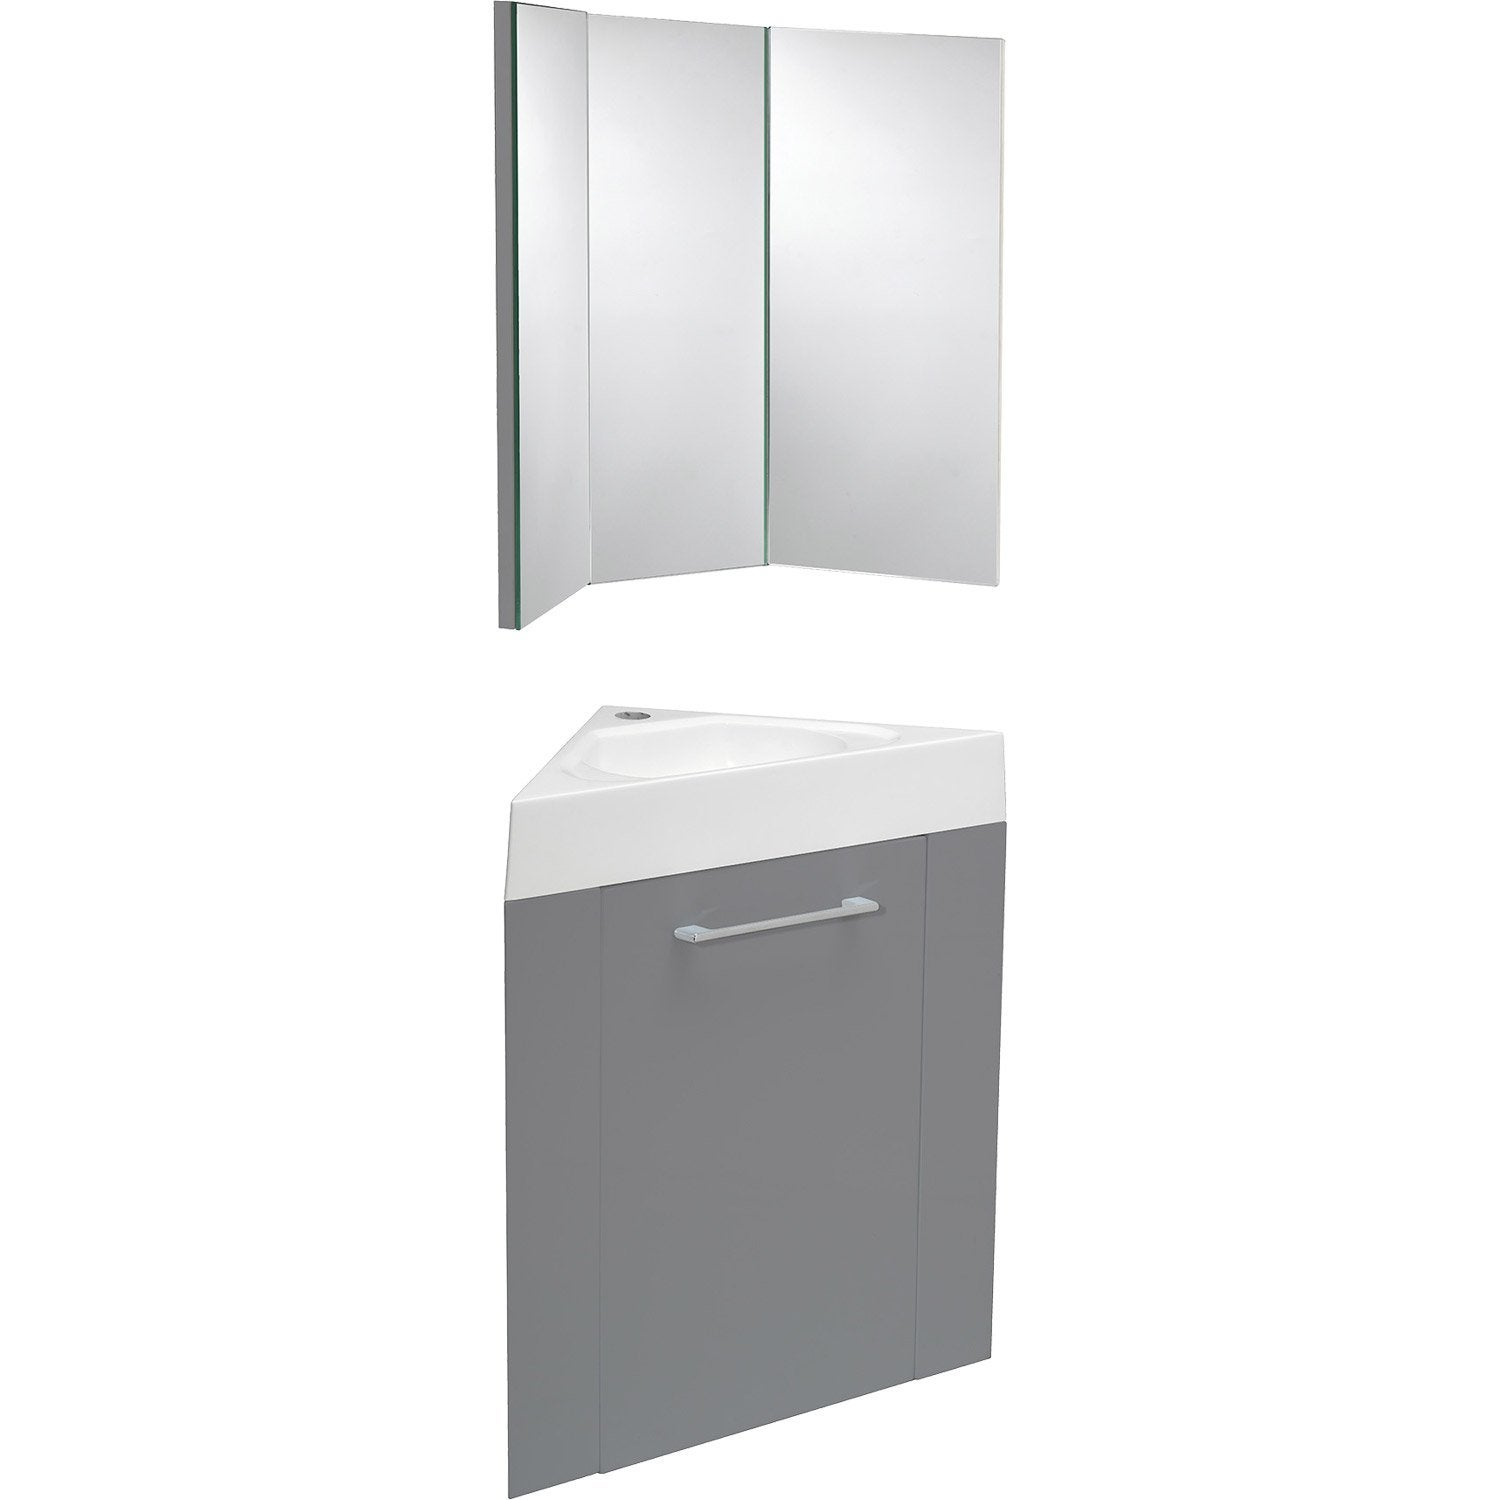 Meuble angle wc leroy merlin table de lit - Meuble wc leroy merlin ...